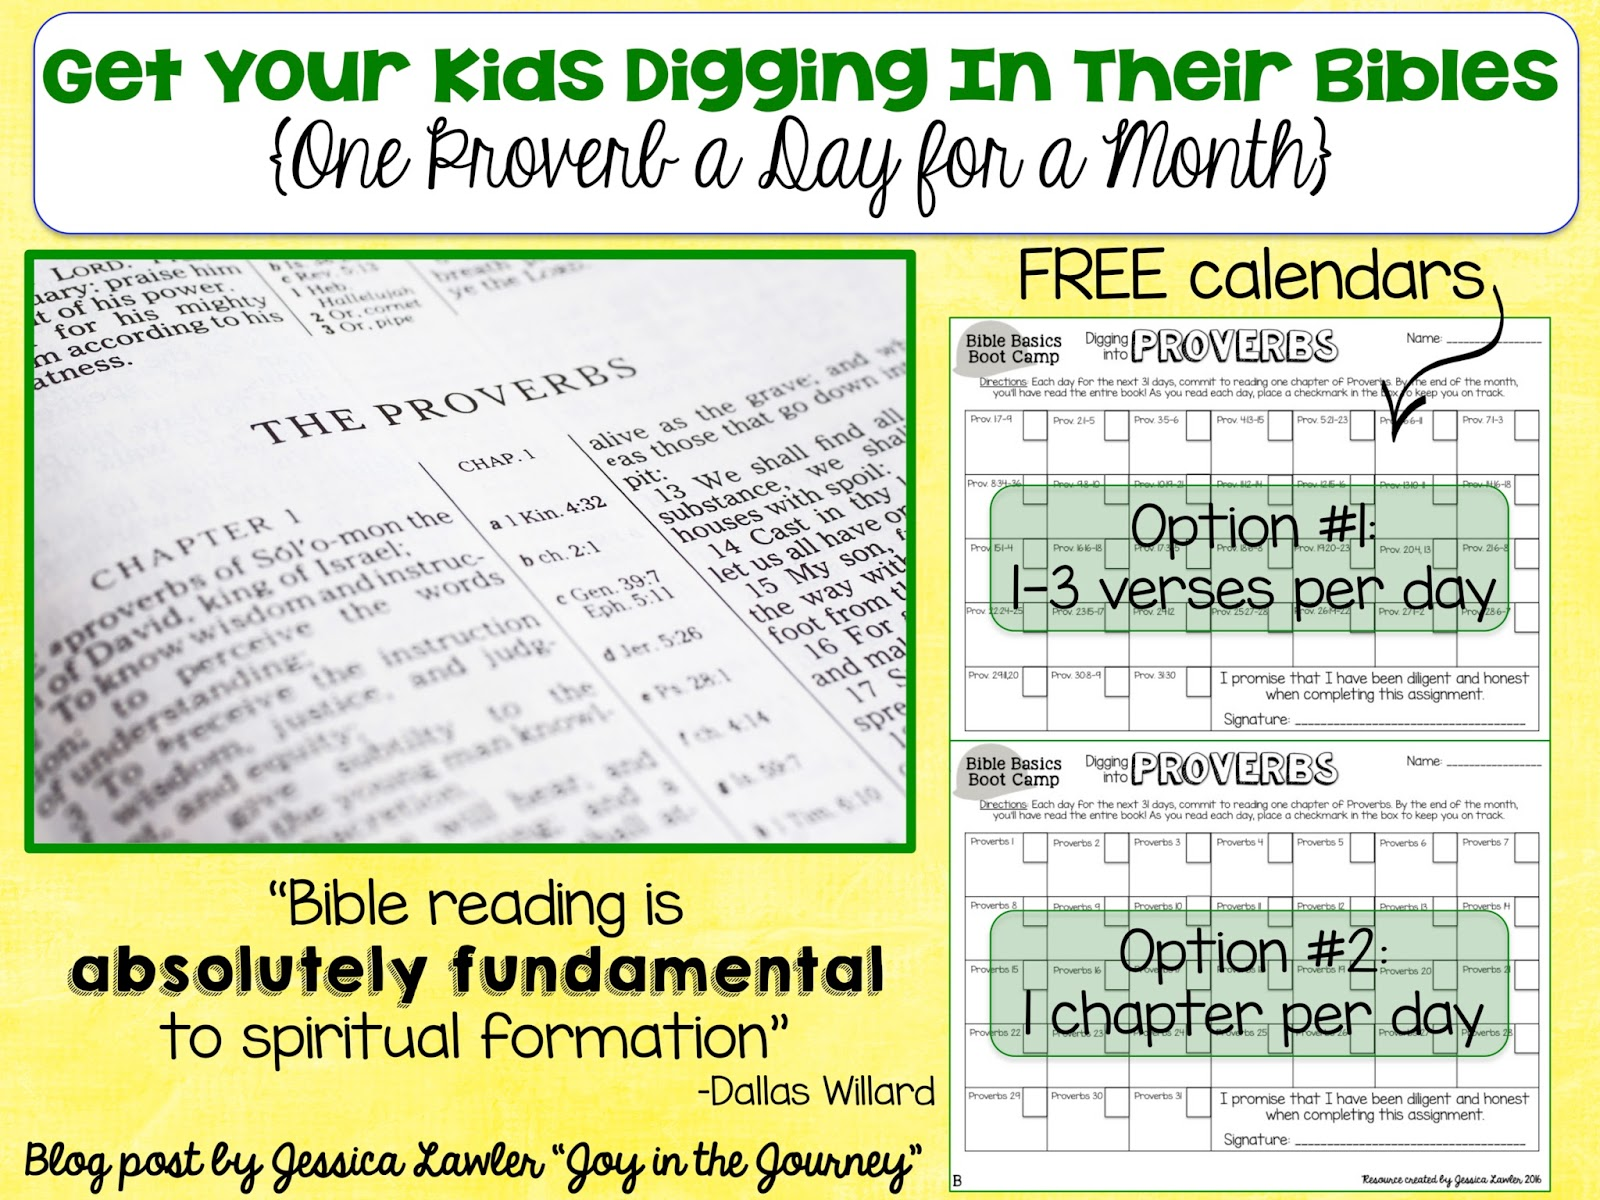 "Get your kids digging in their Bibles - FREE reading calendars to read through Proverbs in a month. Blog post includes calendar options for both younger and older kids. Resource created by Jessica Lawler, ""Joy in the Journey"""